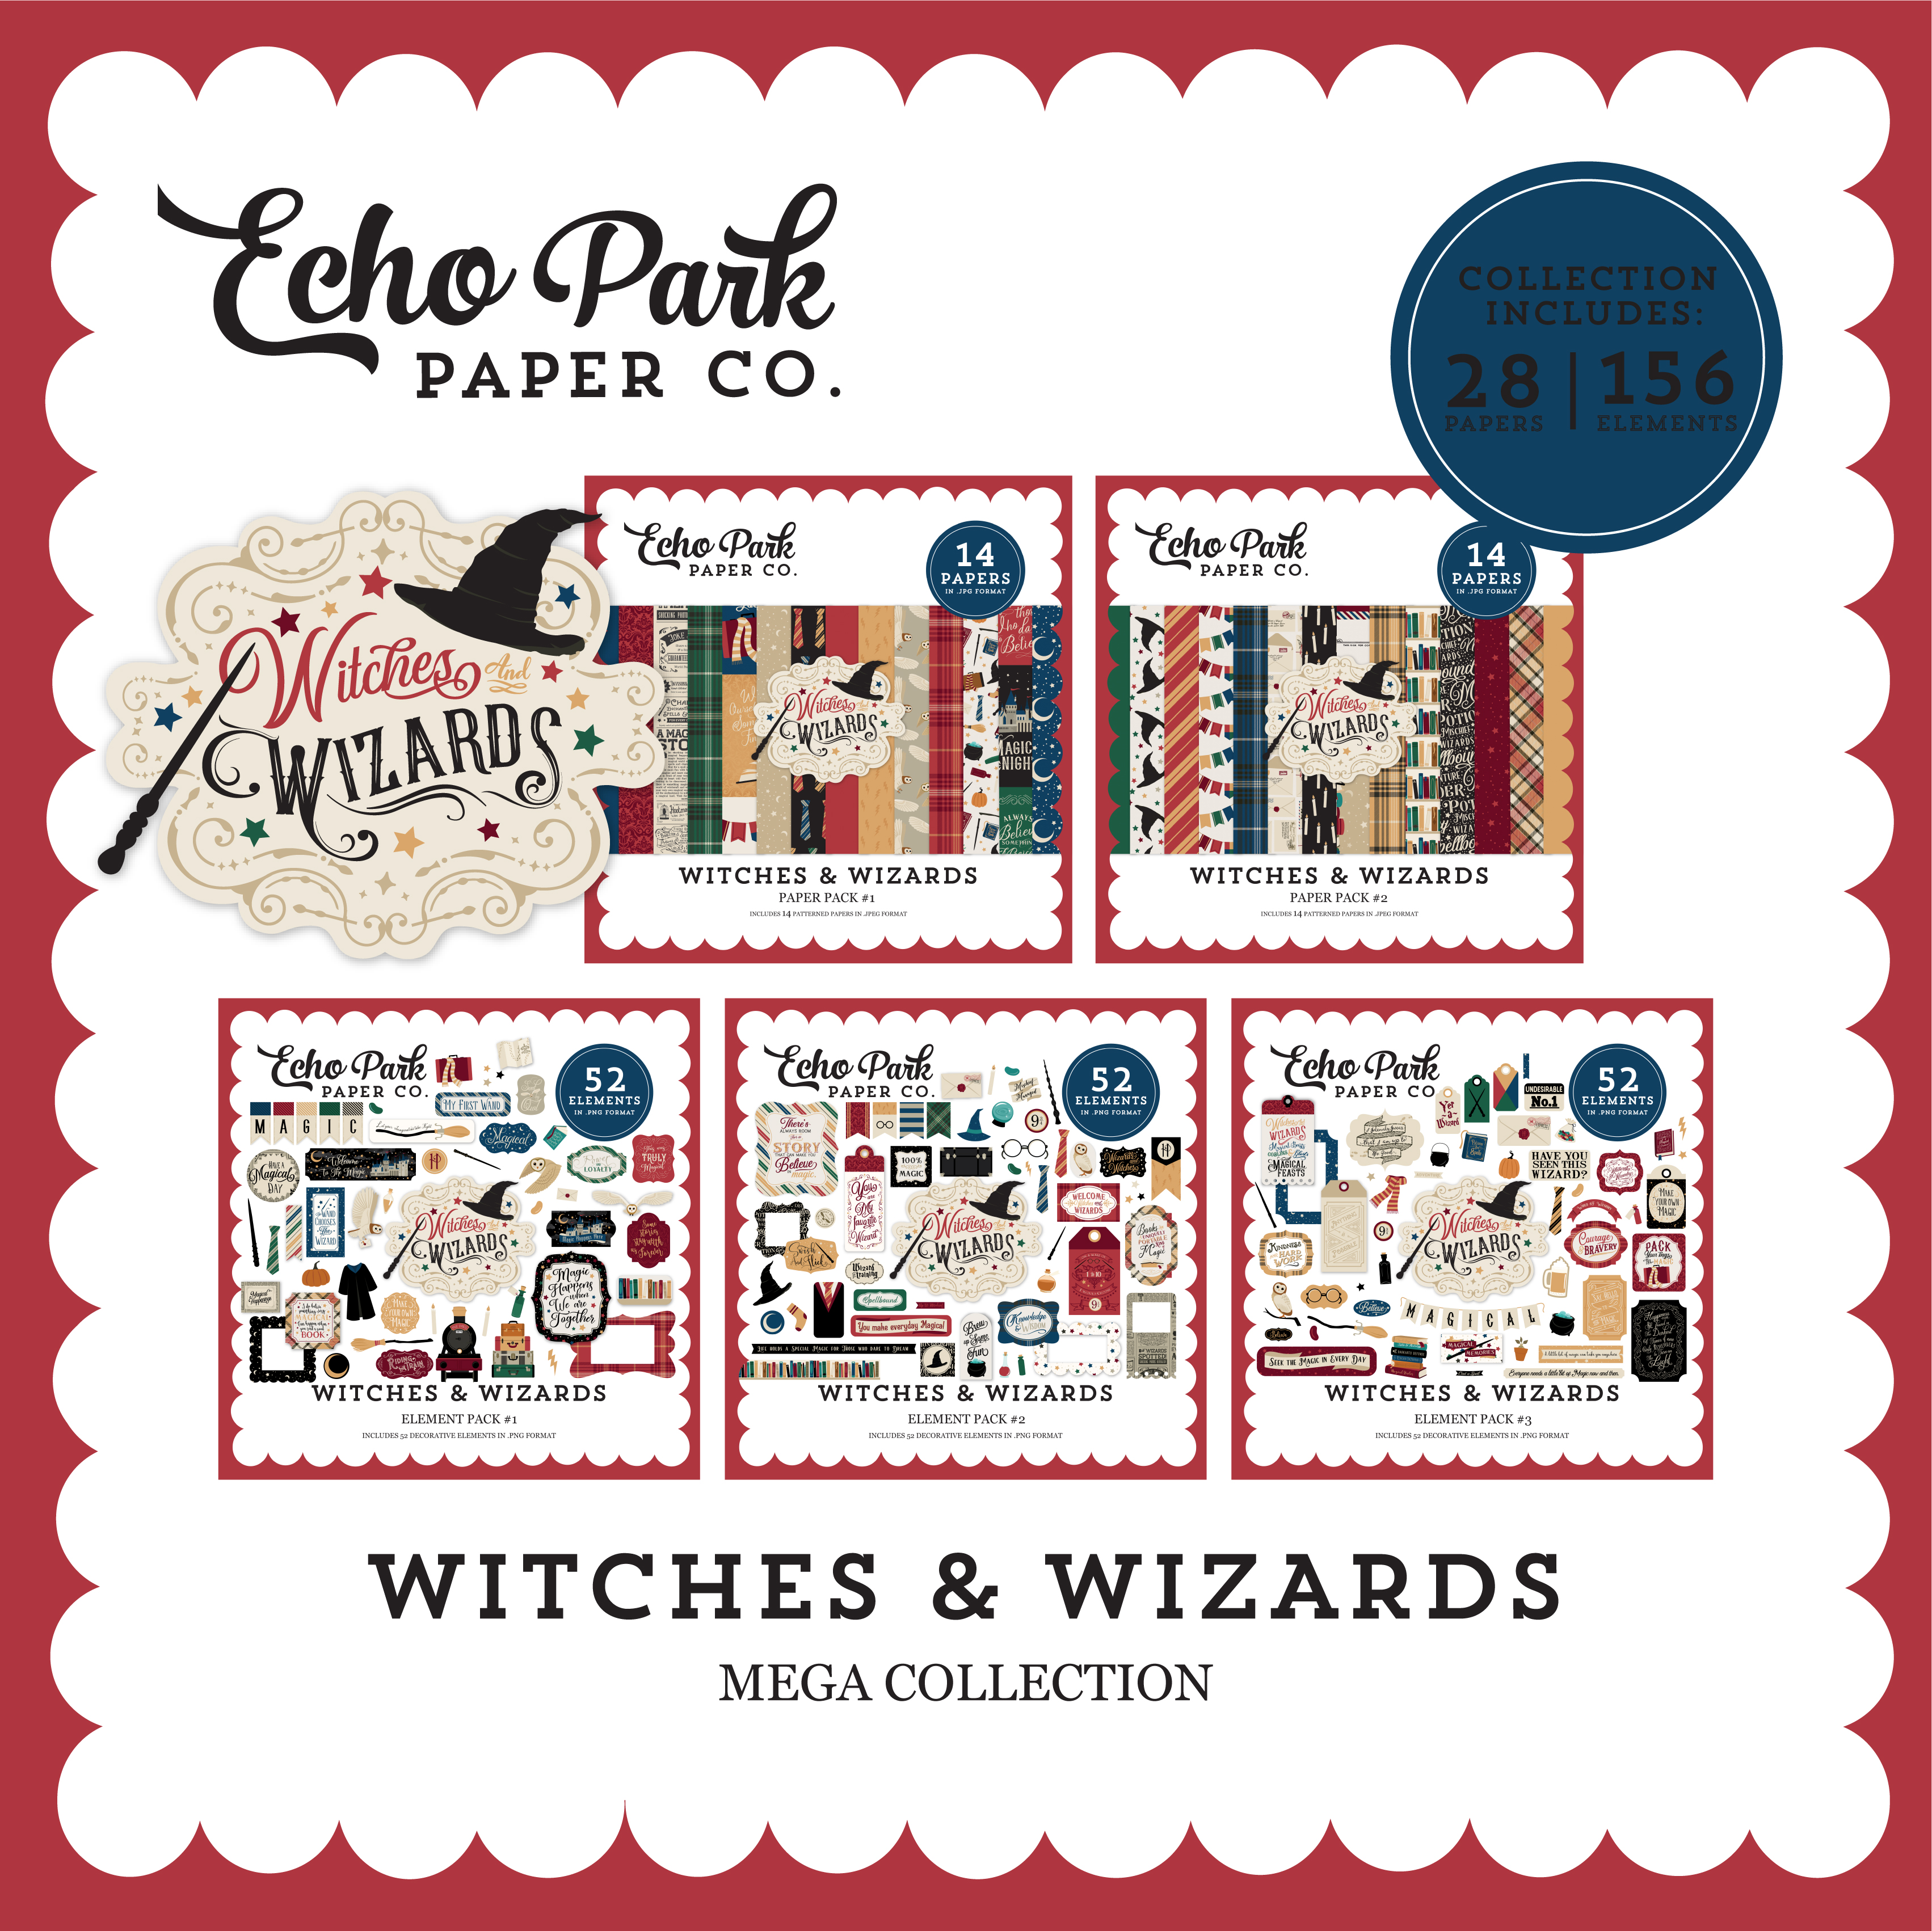 Witches & Wizards Mega Collection